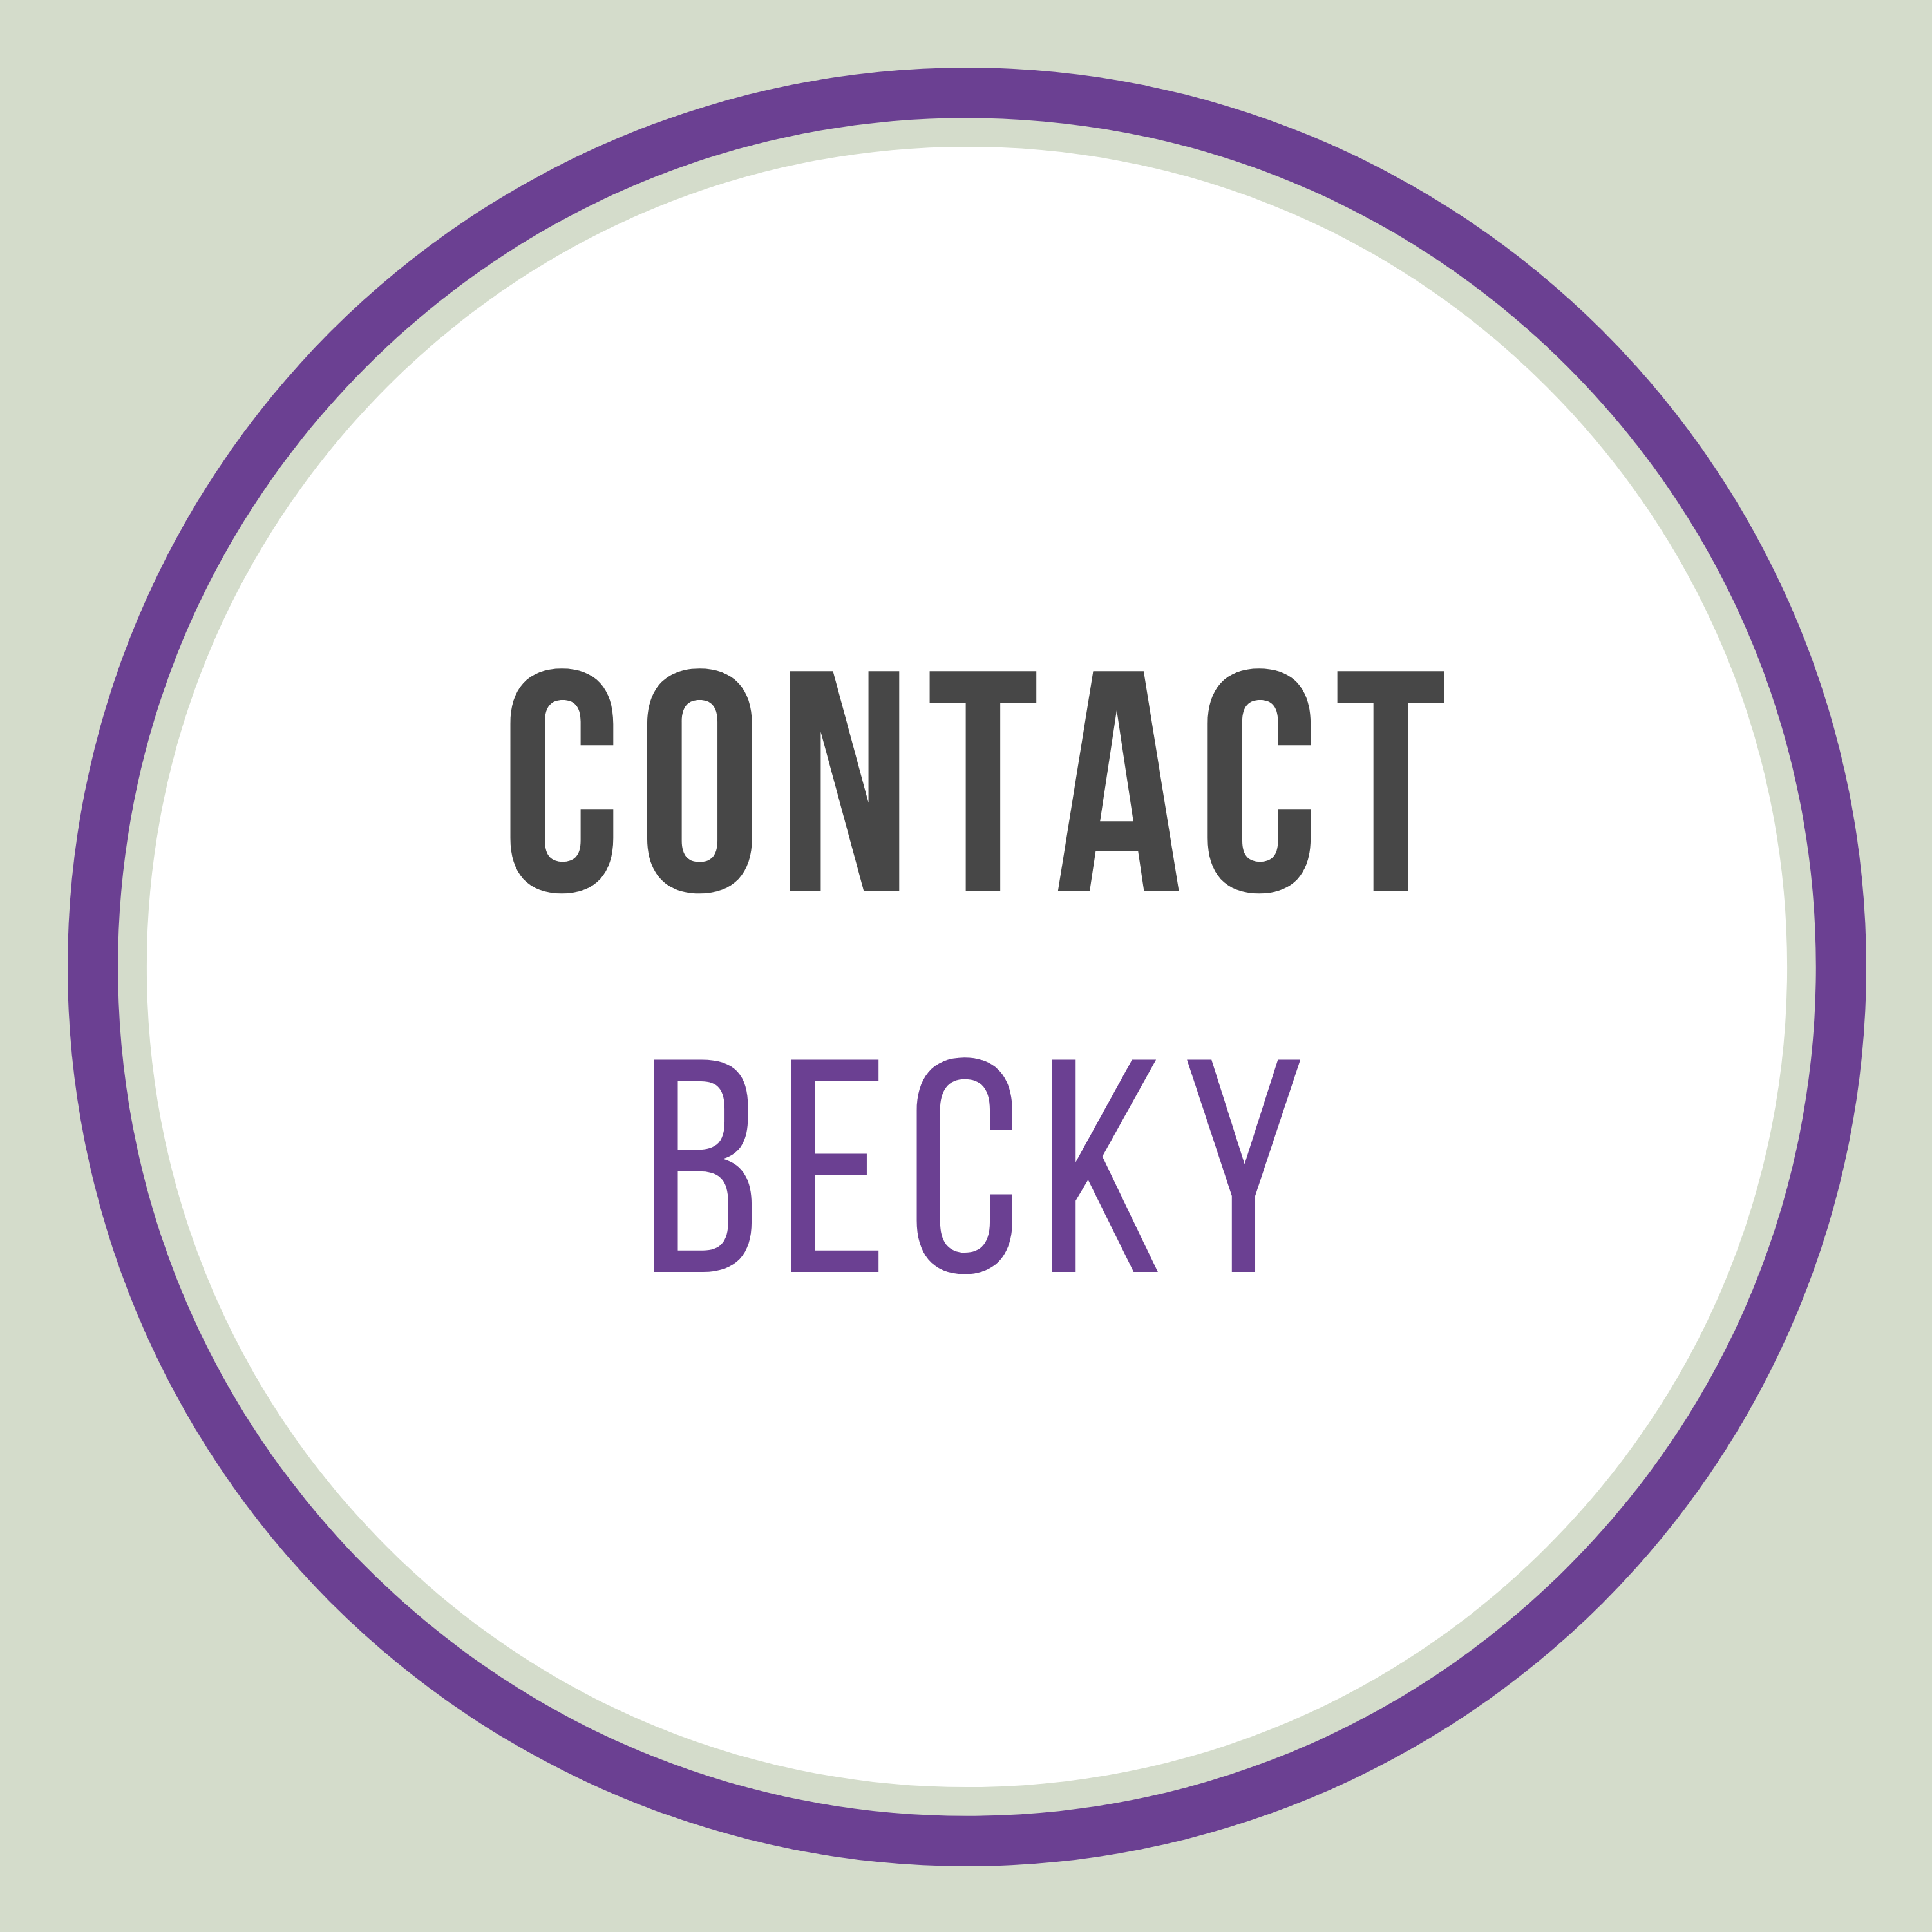 contact becky button-green.png